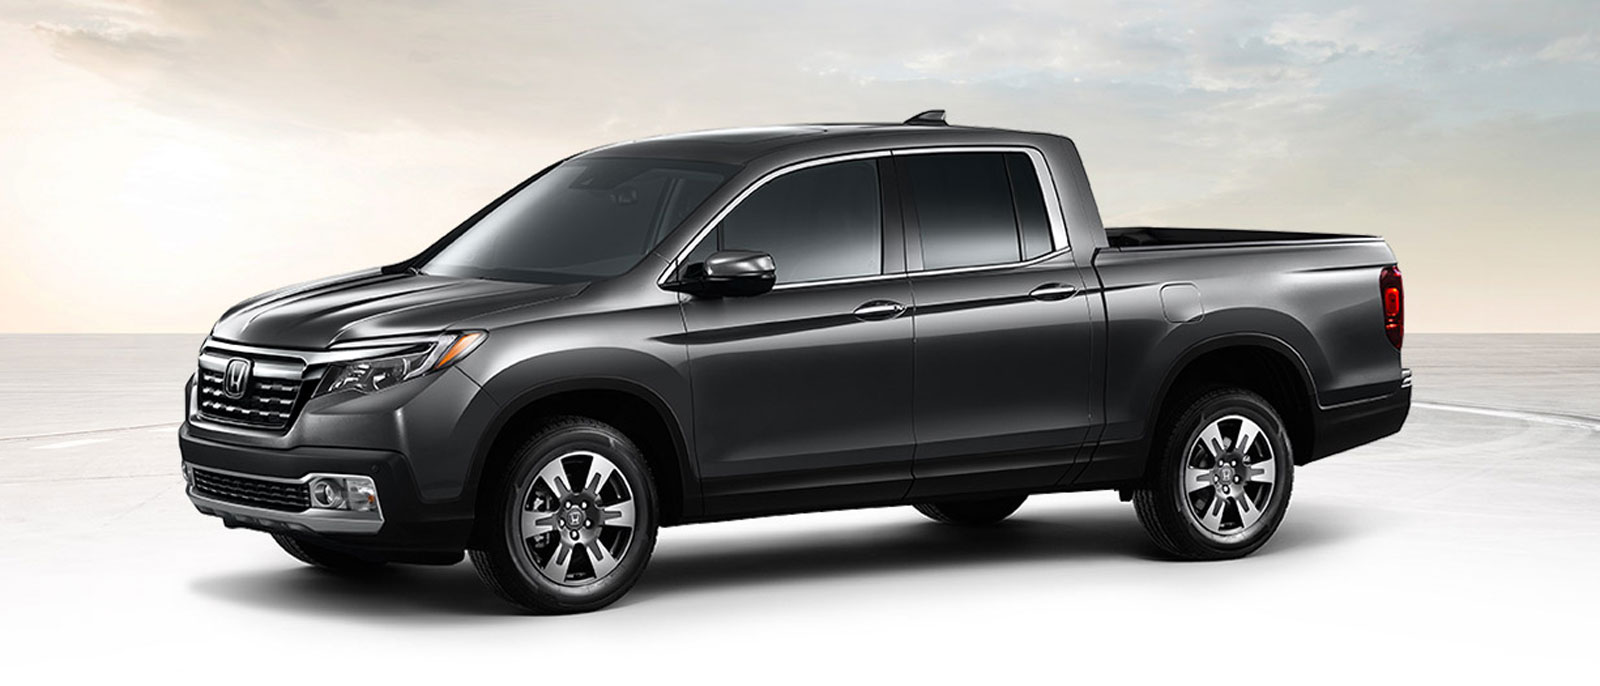 Learn More About the Upcoming 2017 Honda Ridgeline